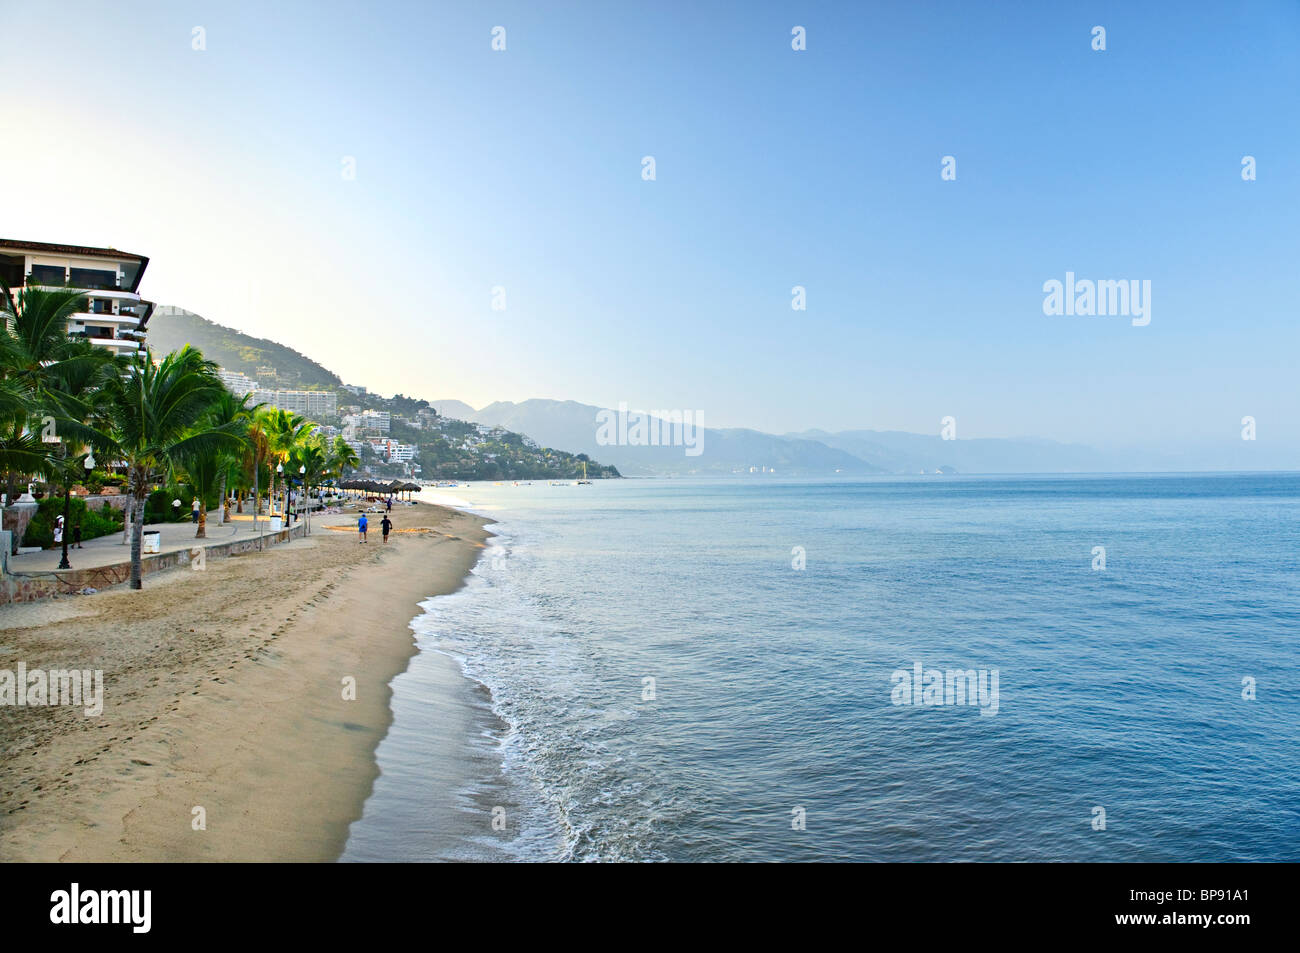 Beach and Malecon on Pacific Ocean in Puerto Vallarta, Mexico - Stock Image